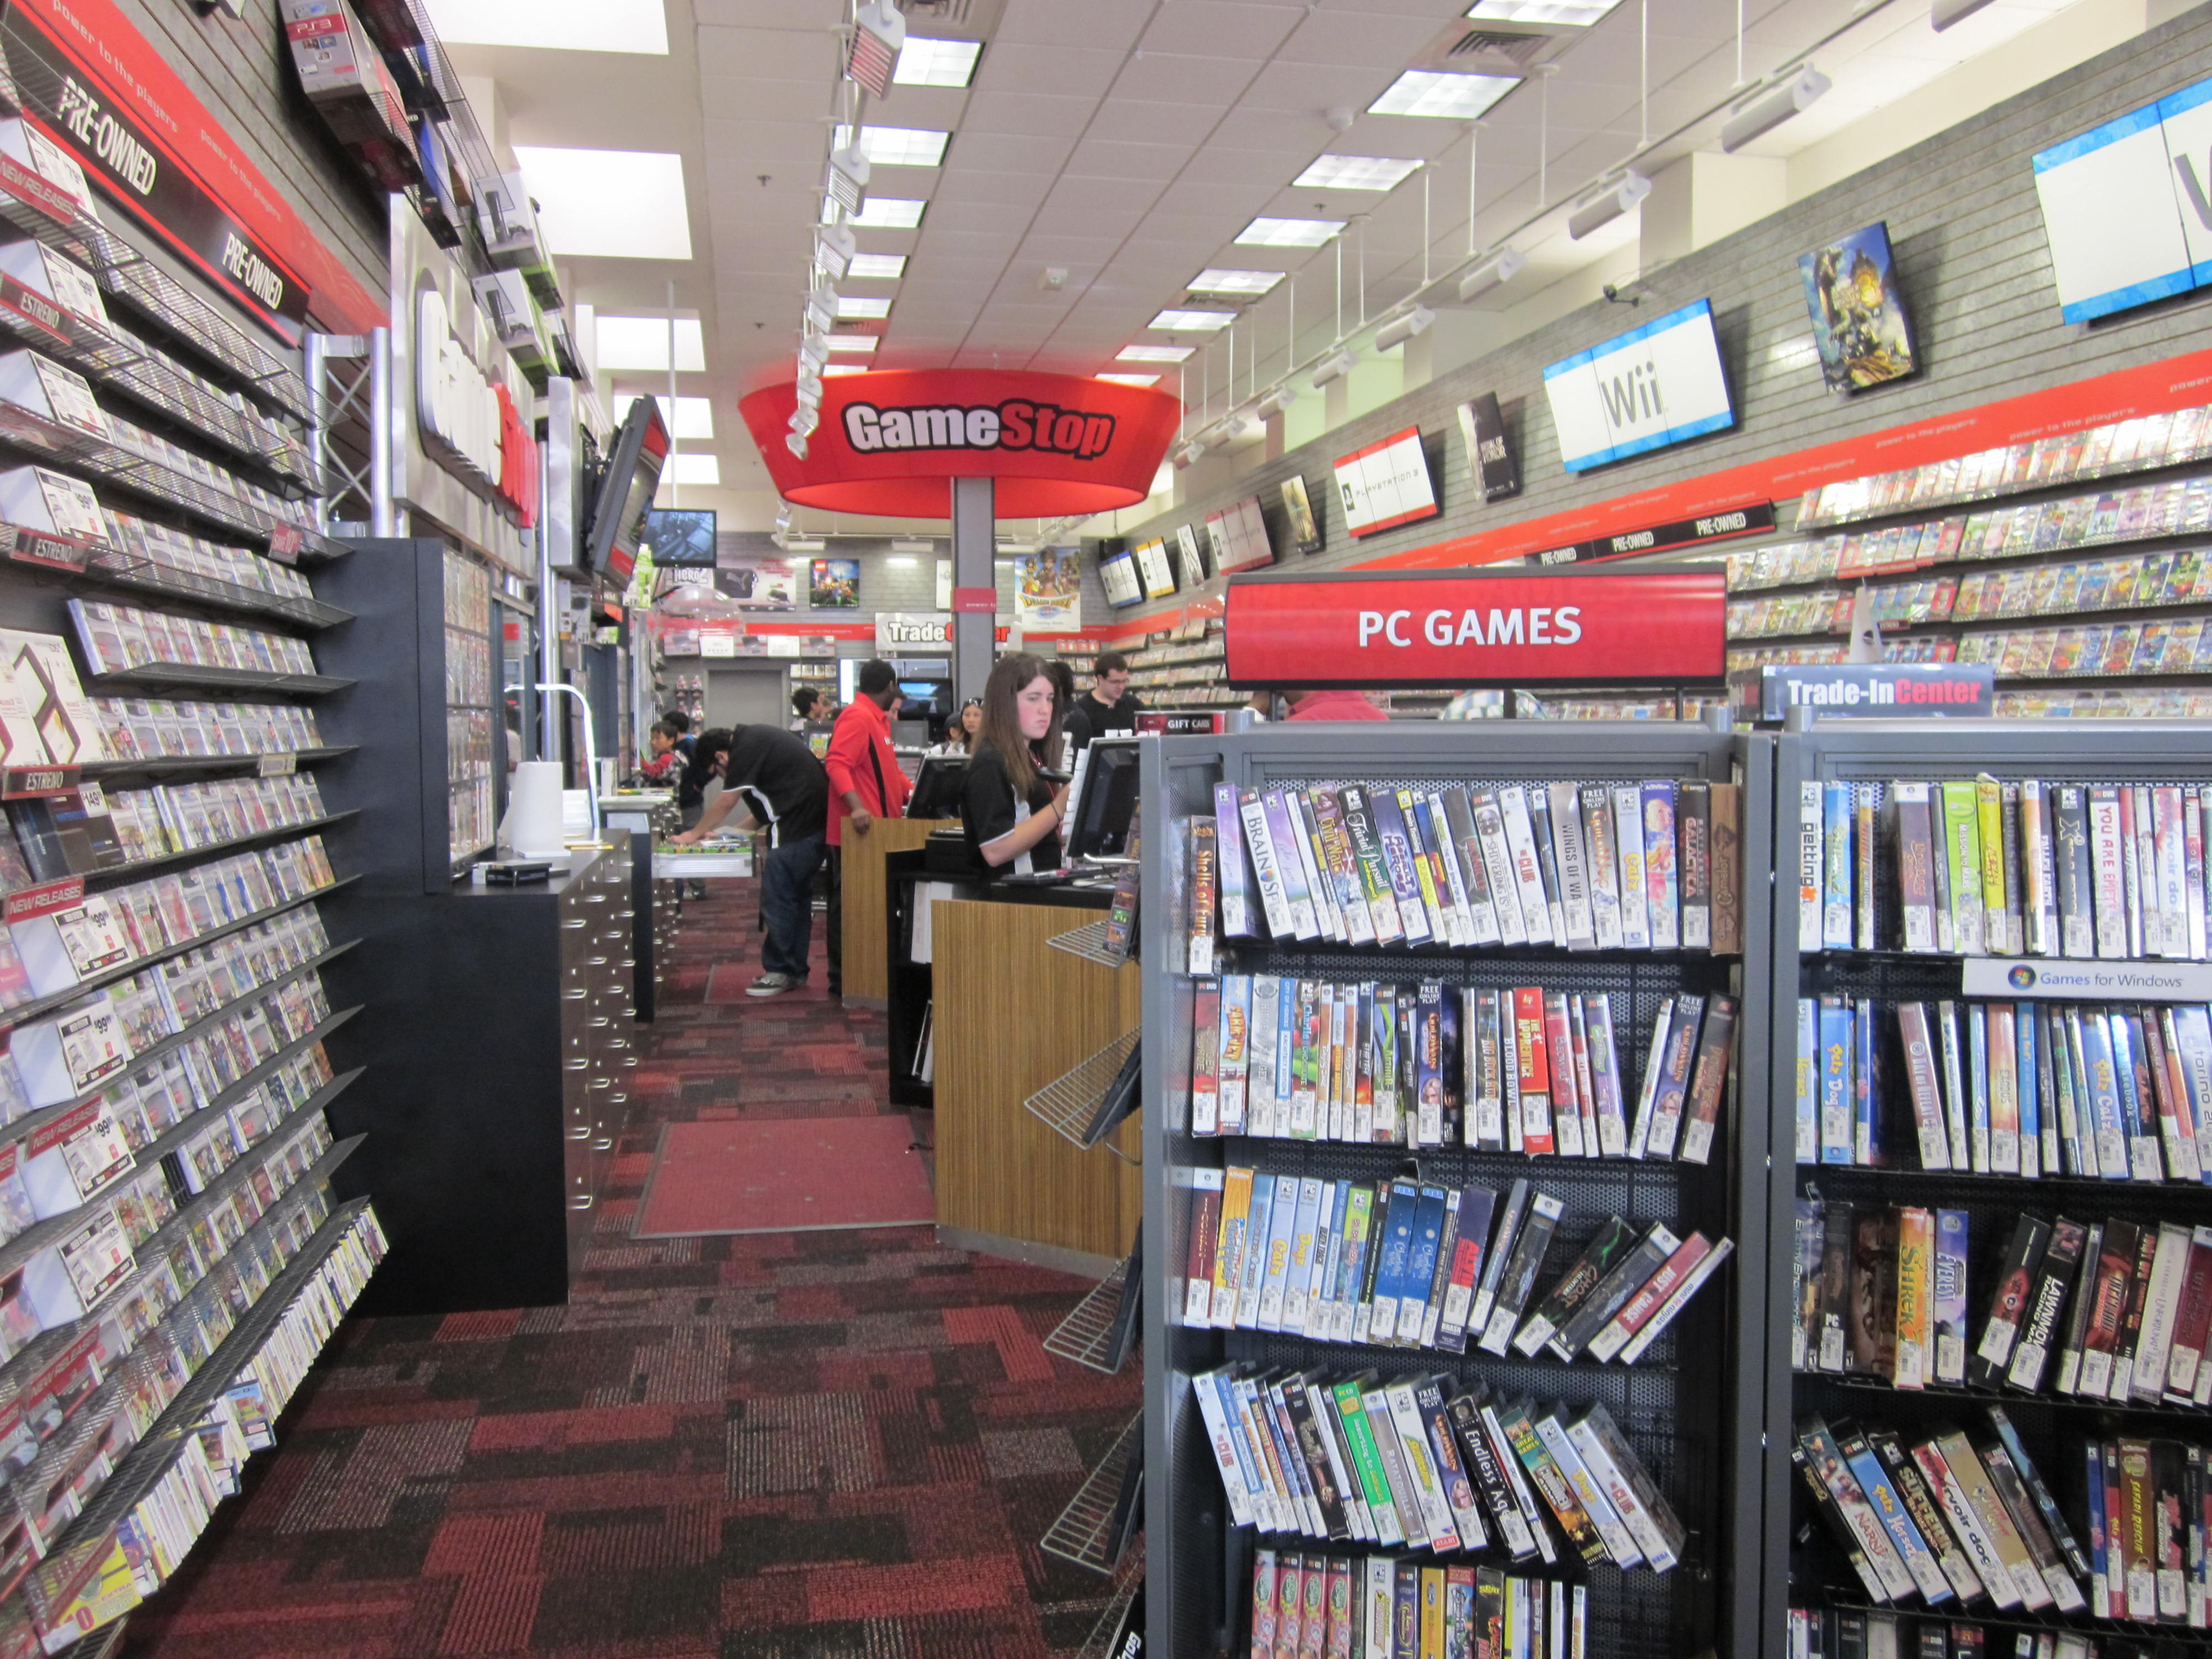 File:GameStop on Powell St., SF interior.JPG - Wikimedia ...Gamestop